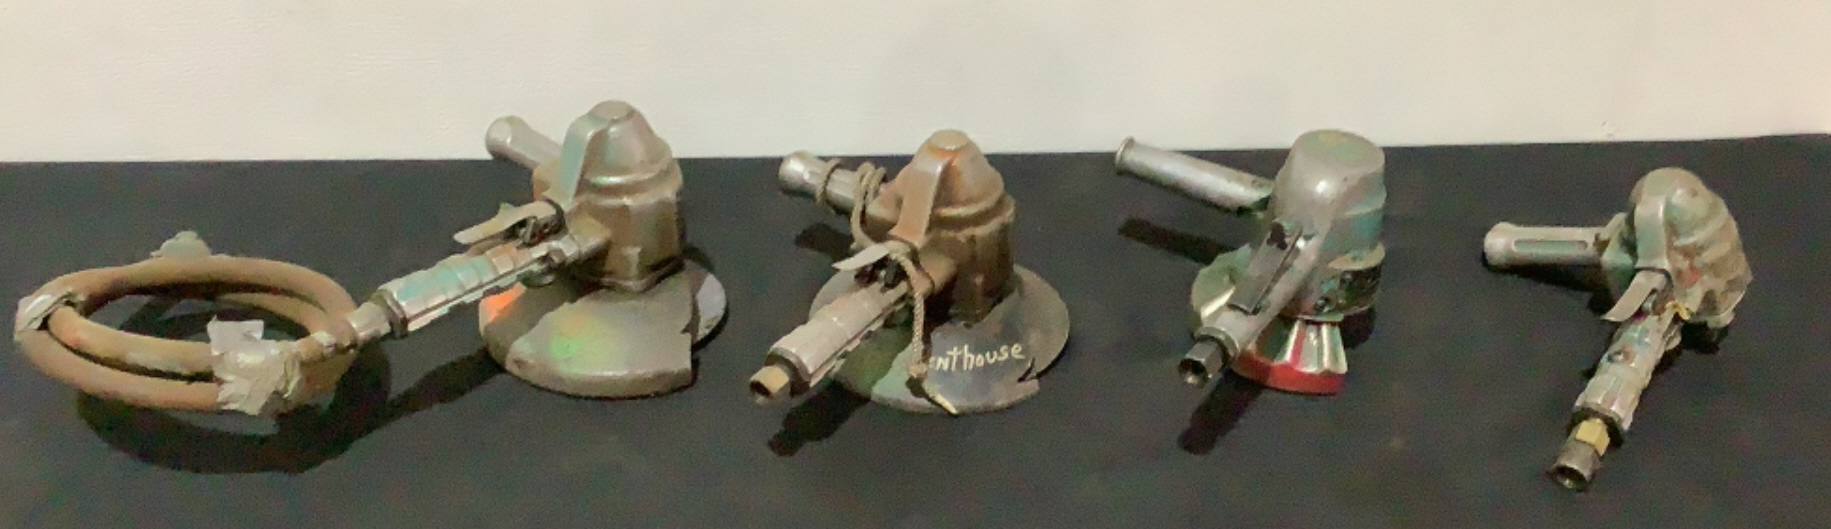 (4) Pneumatic Angle Grinders